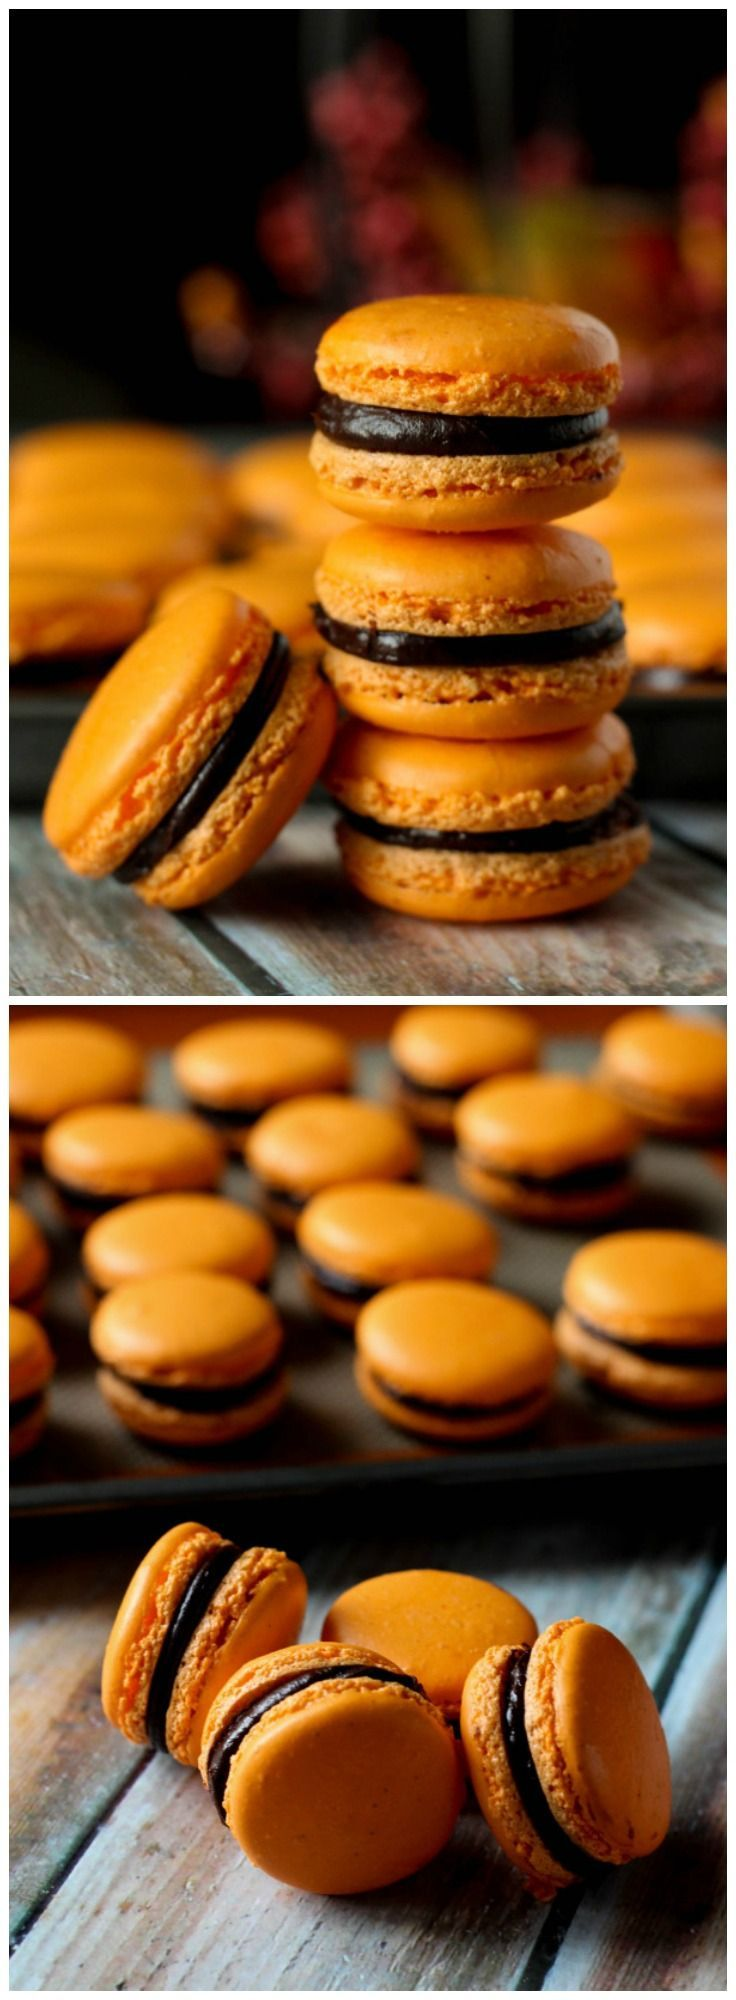 orange dark chocolate macarons rezept gluten free goodies pinterest kuchen geb ck. Black Bedroom Furniture Sets. Home Design Ideas